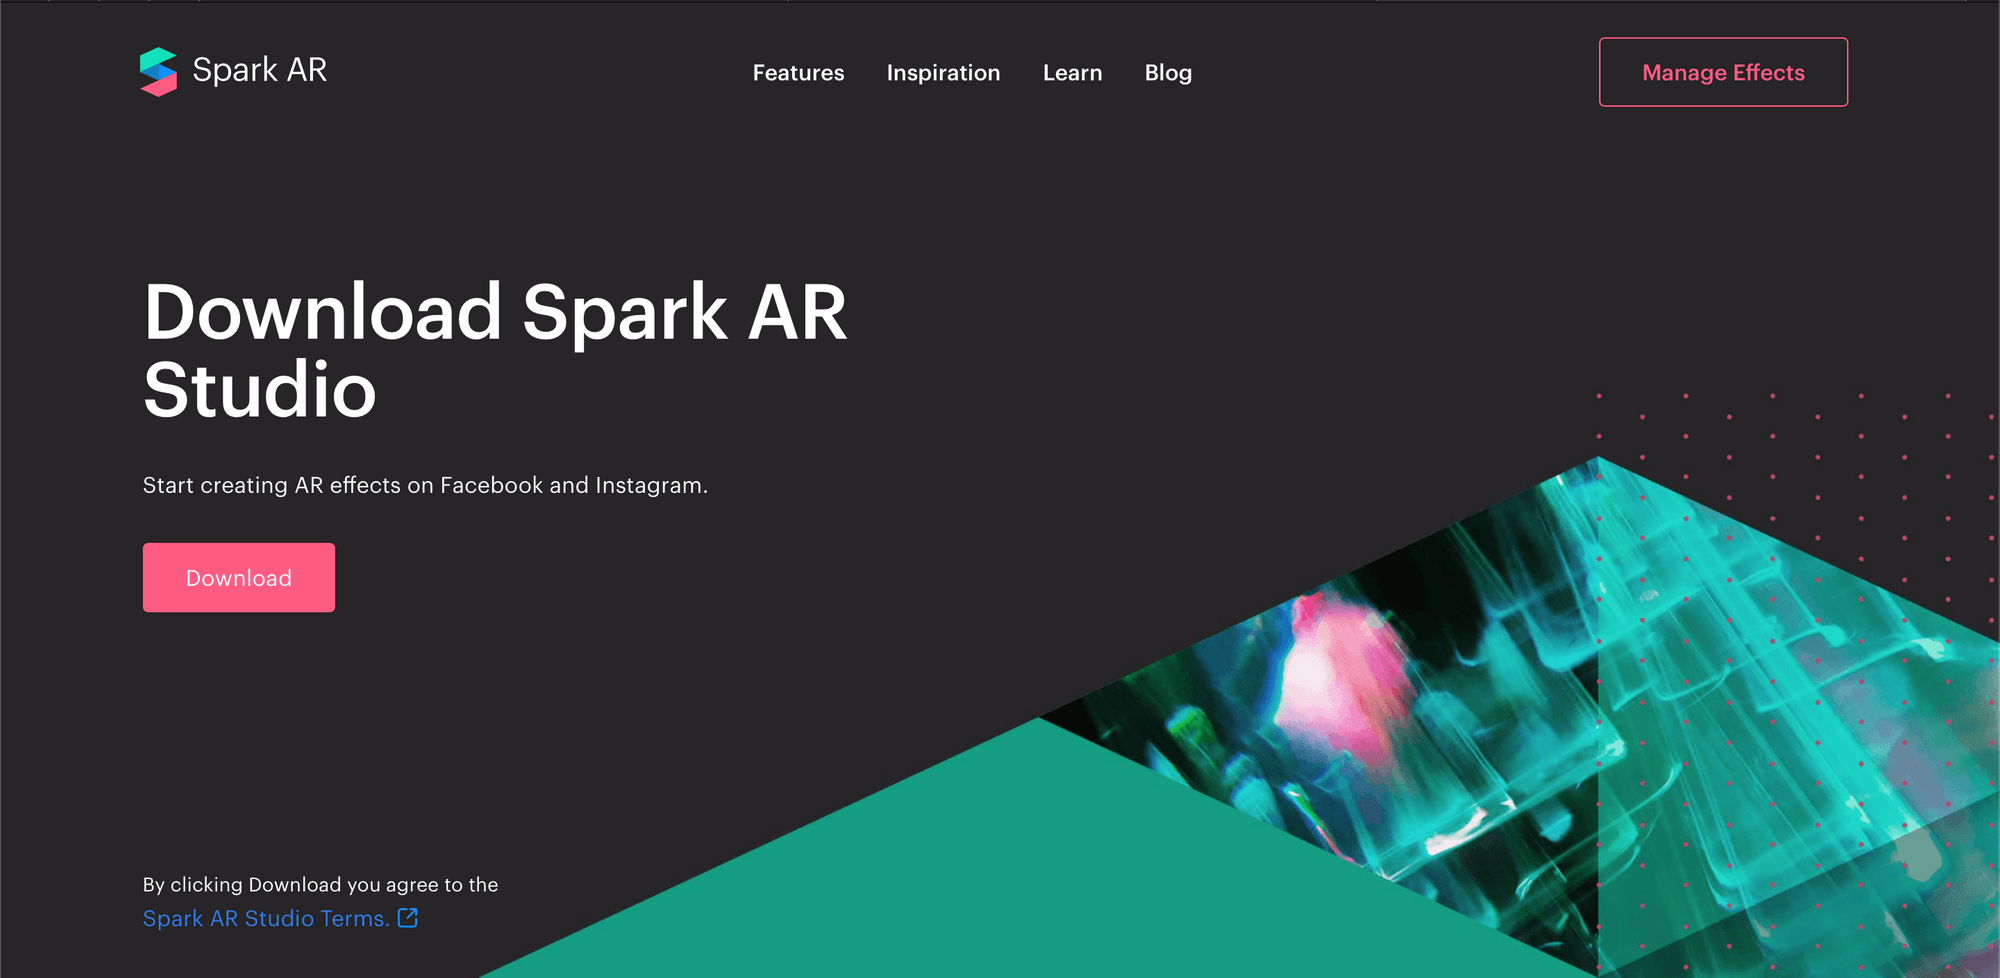 Spark AR Studio website where you can download augmented reality effects for Facebook and Instagram